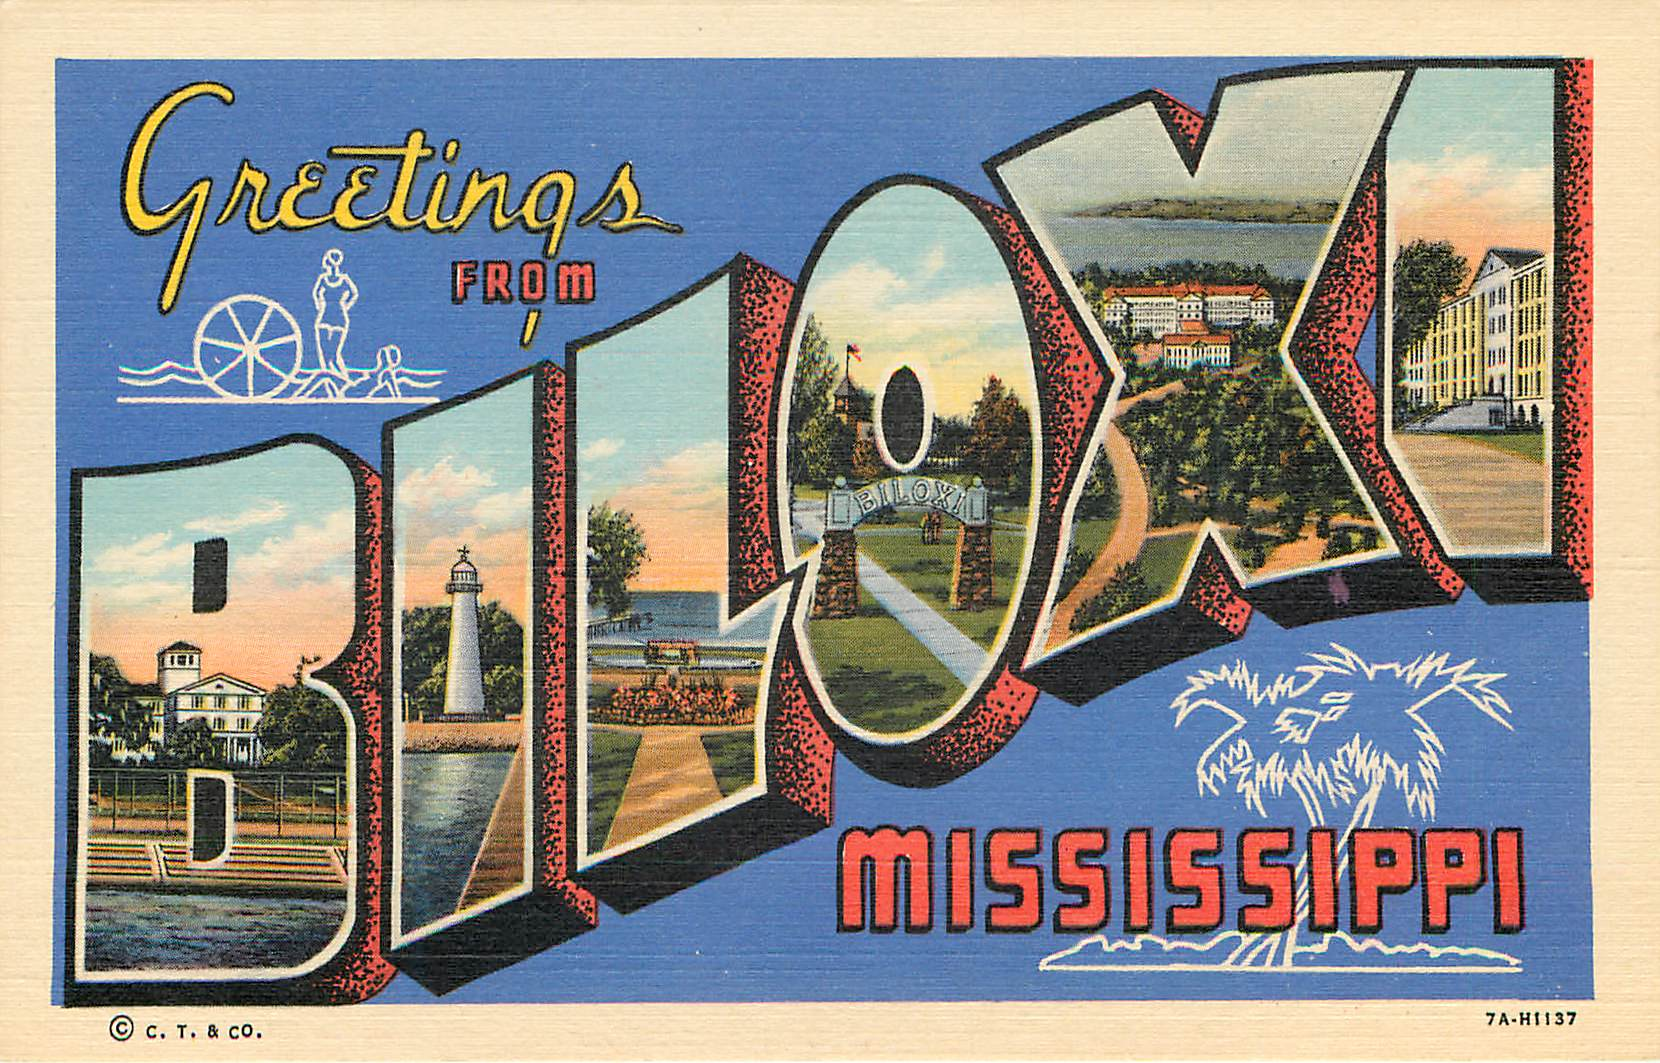 Greetings from Biloxi, Mississippi Large Letter Postcard